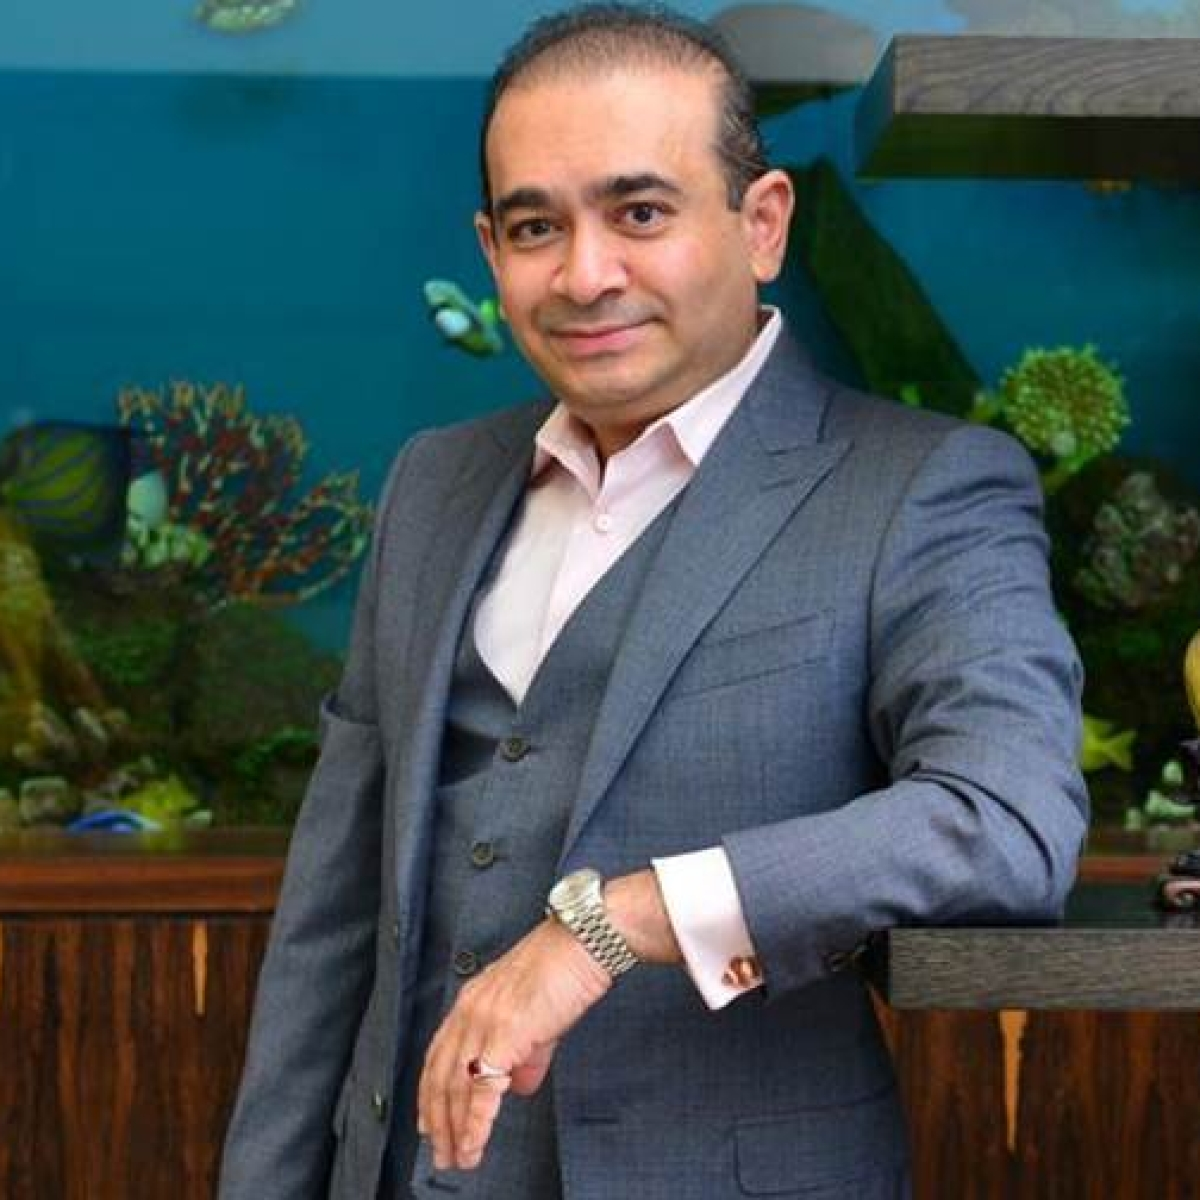 Artworks, luxury watches, cars and more: You can now own Nirav Modi's 18 cr painting, Rolls-Royce Ghost, Cartier watch